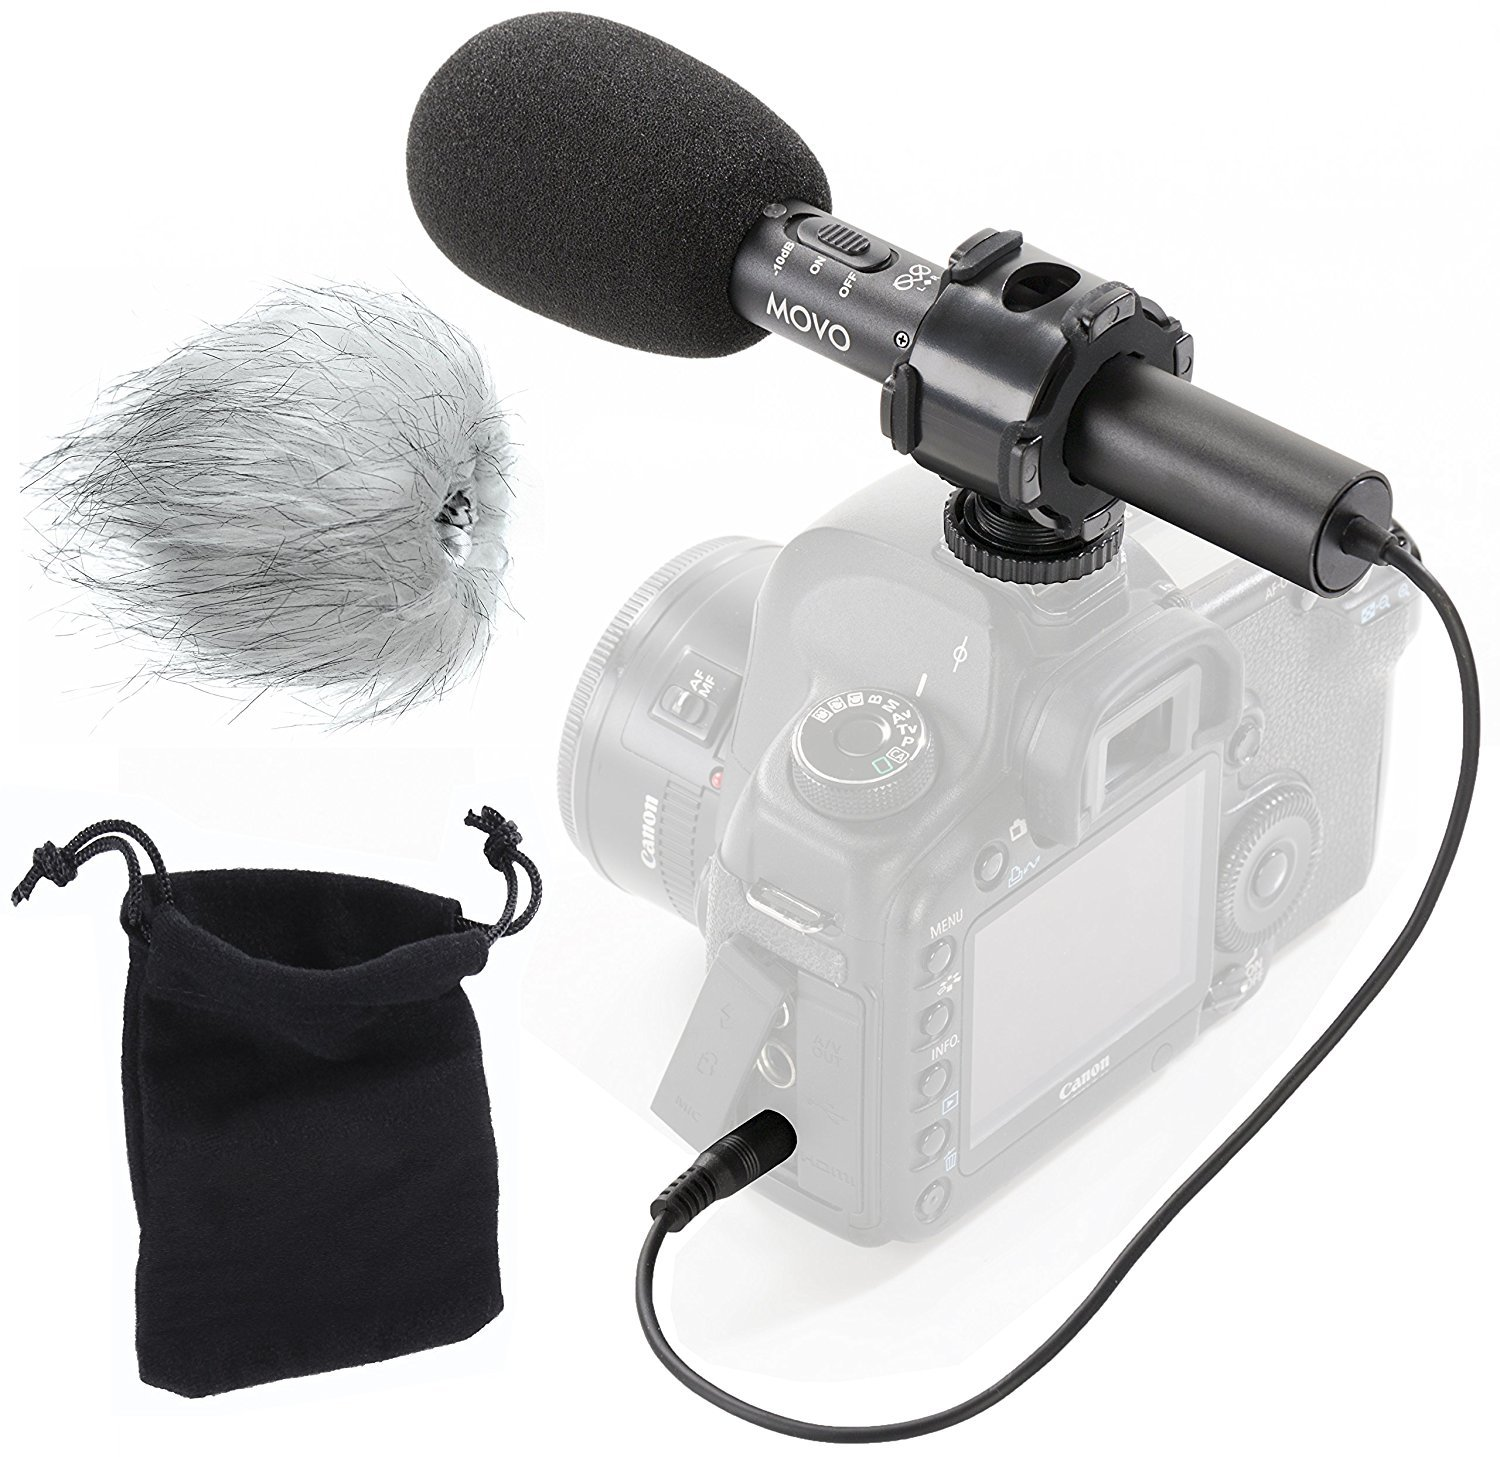 Movo On-Camera Stereo Video Microphone with Windscreens & Case for Nikon D850, D810, D800, D750, D610, D600, D500, D7500, D7200, D7100, D5600, D5500, D5300, D5200, D3300, D3200, D4, D5 DSLR